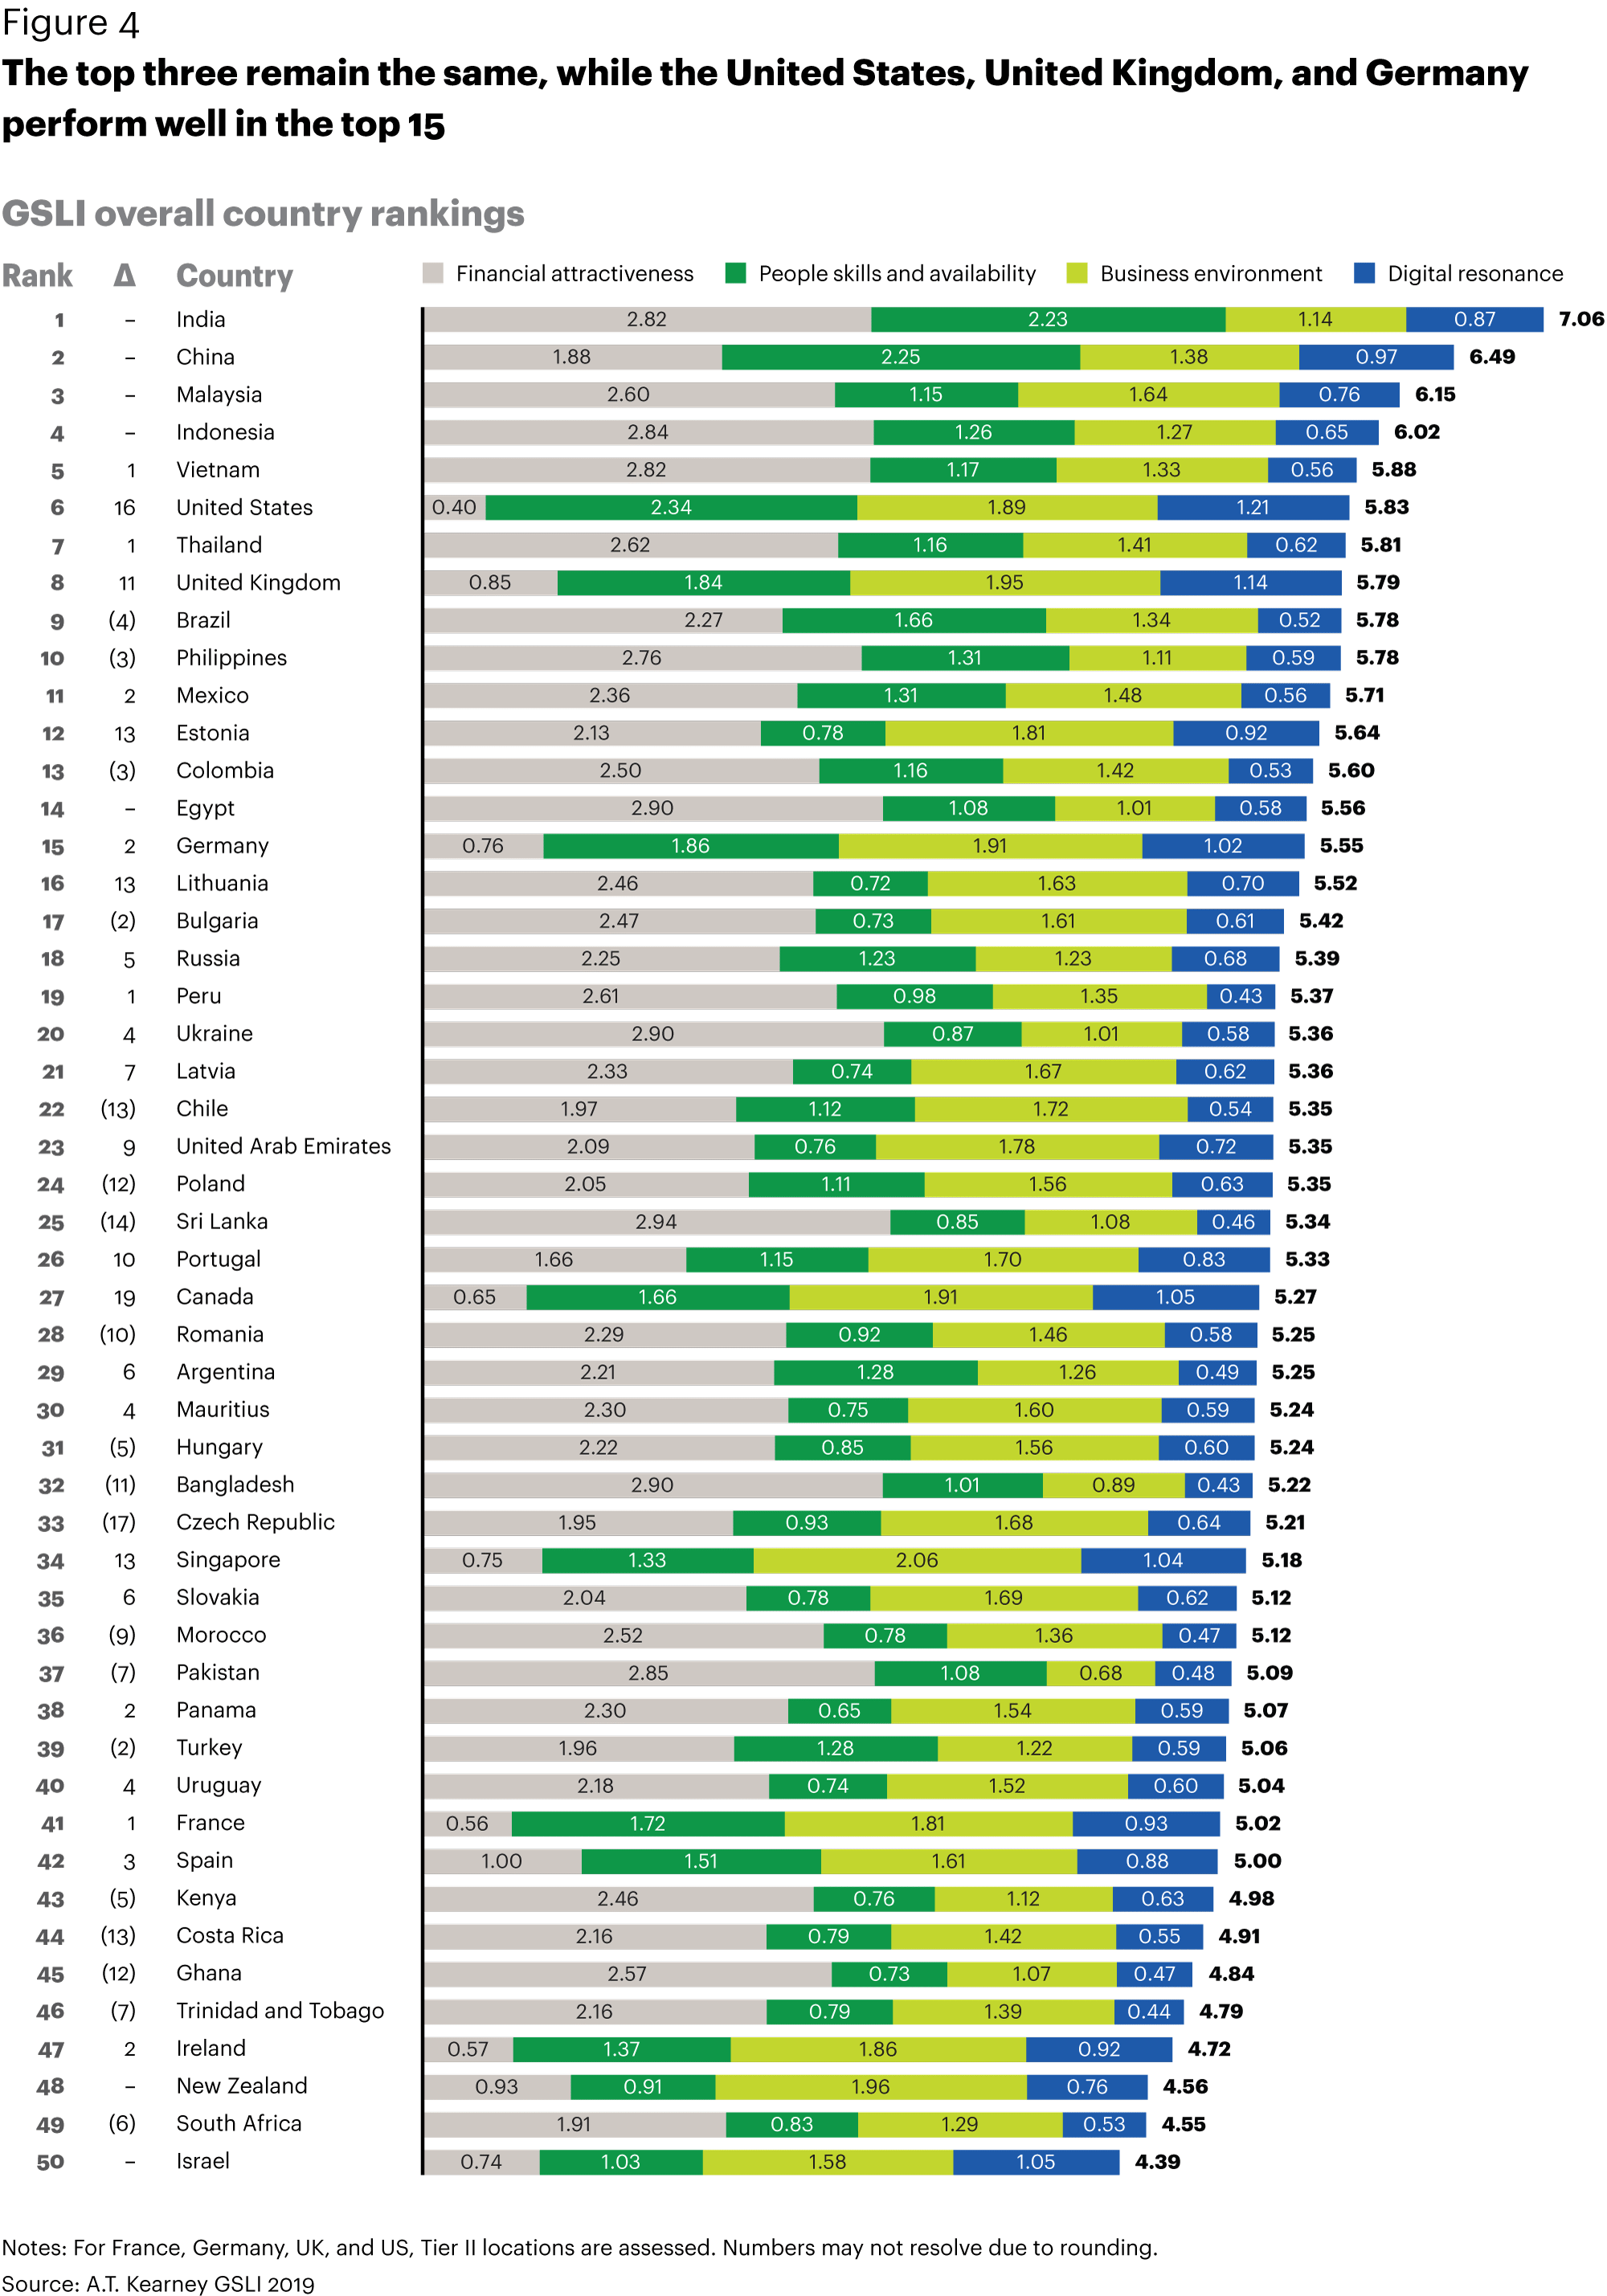 AT Kearney 2019 Country Rankings Report